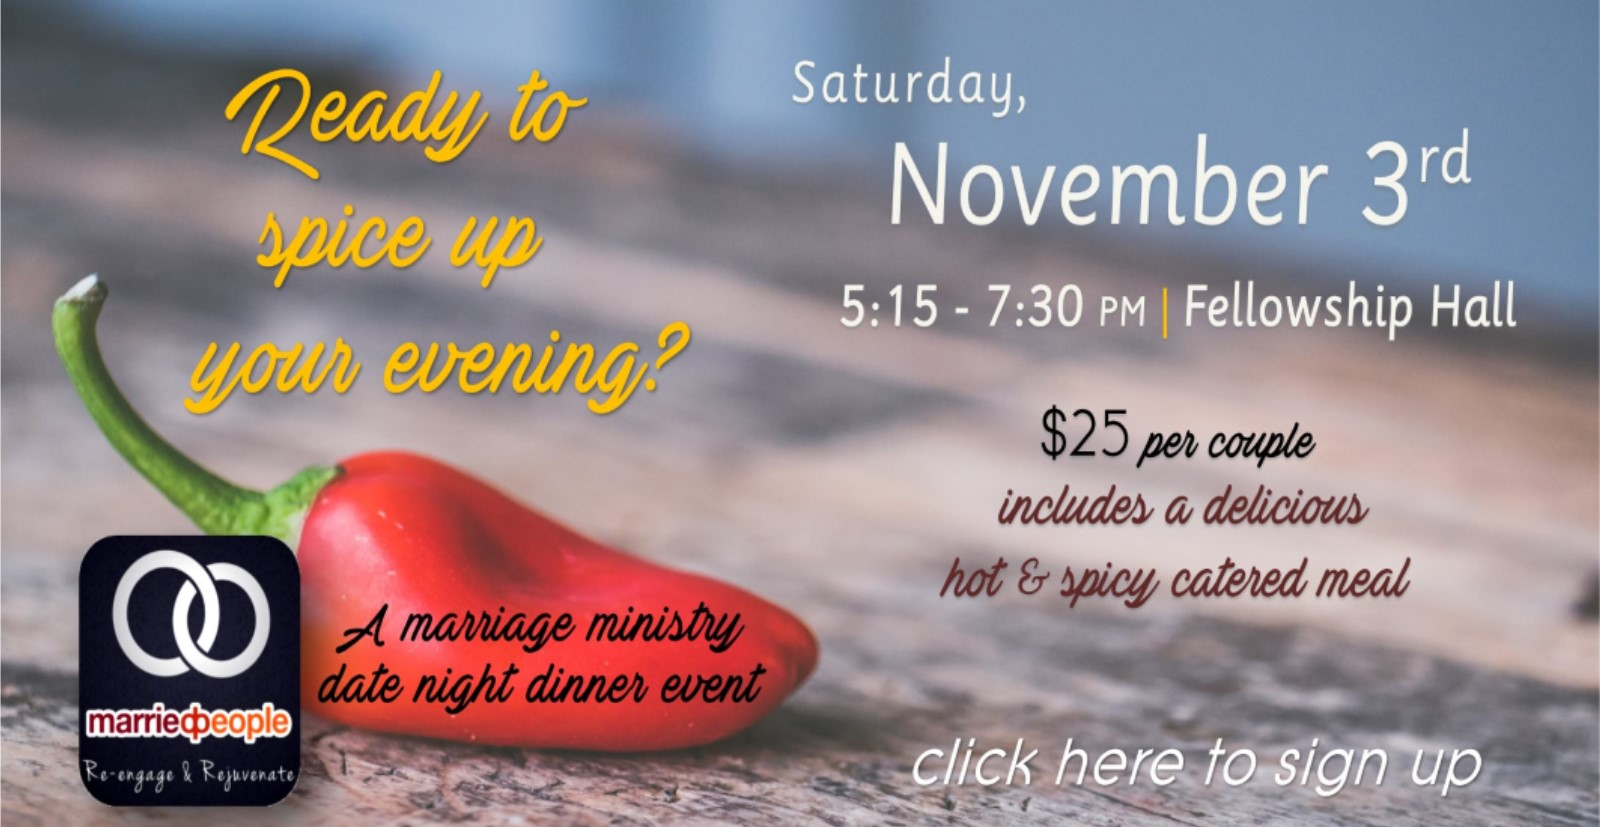 Fun giveaways for marriage ministry event